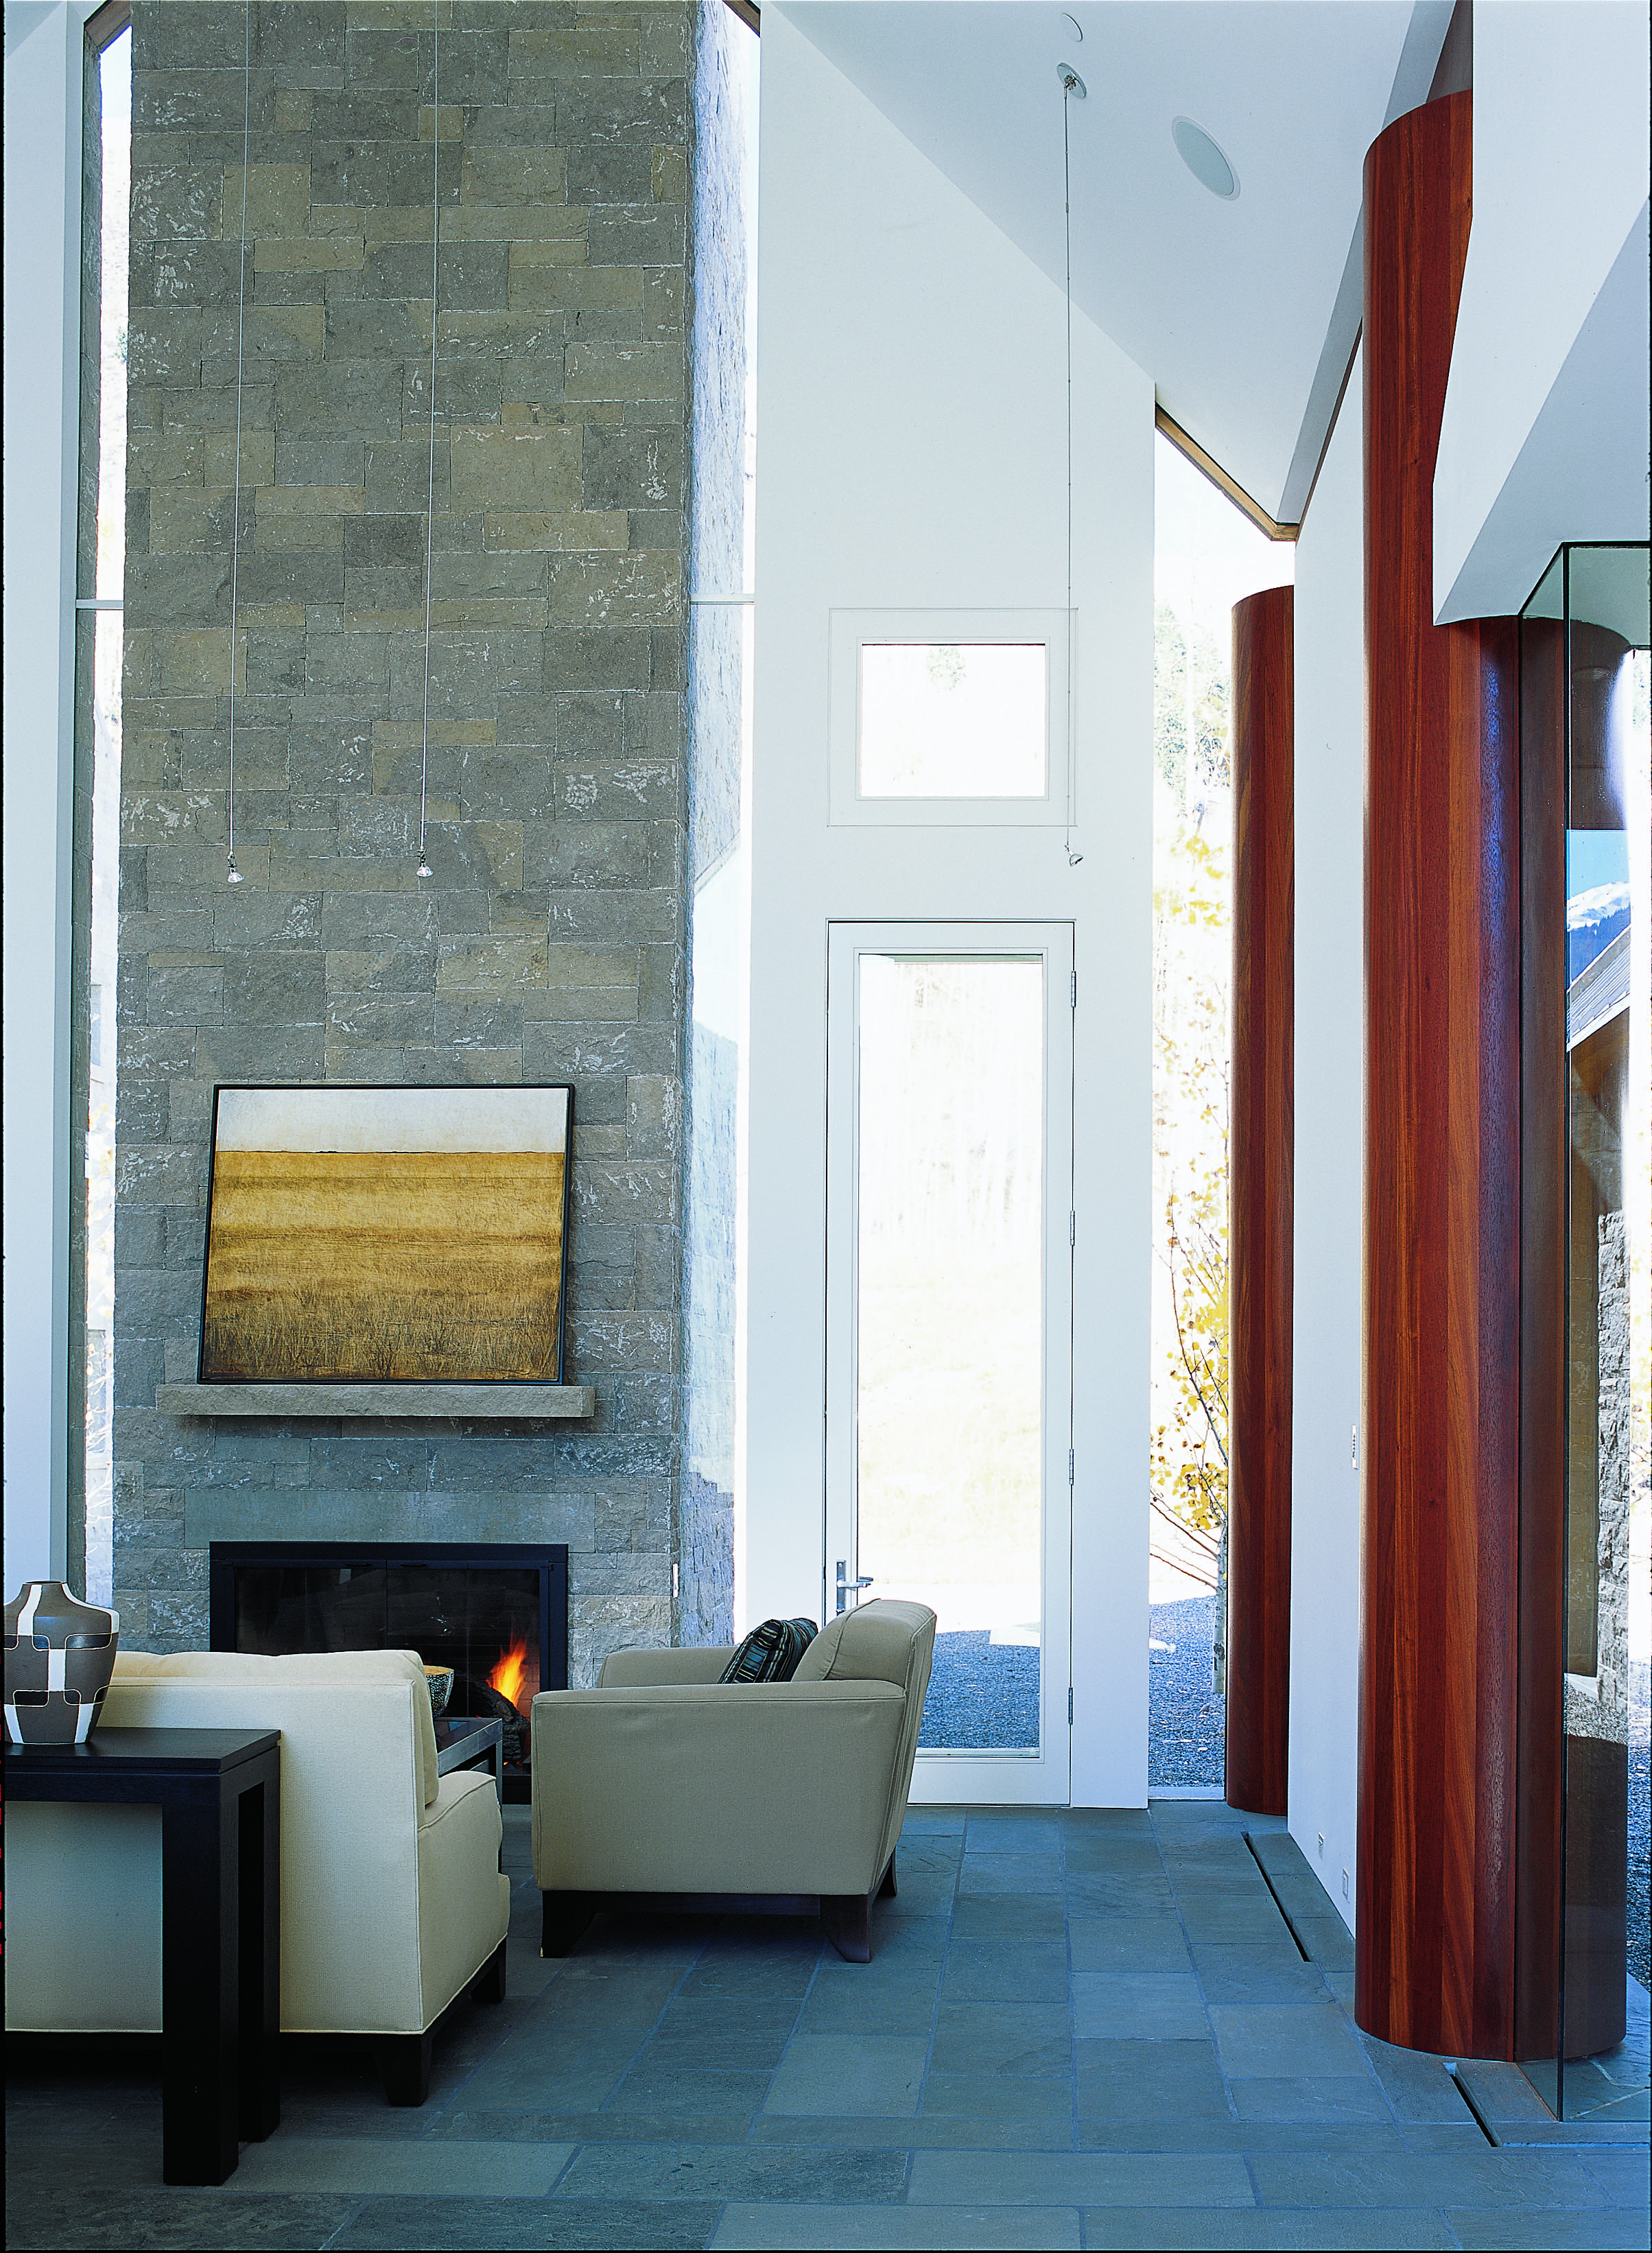 Volumetric pavilion ceilings and local stone in Aspen, Co.